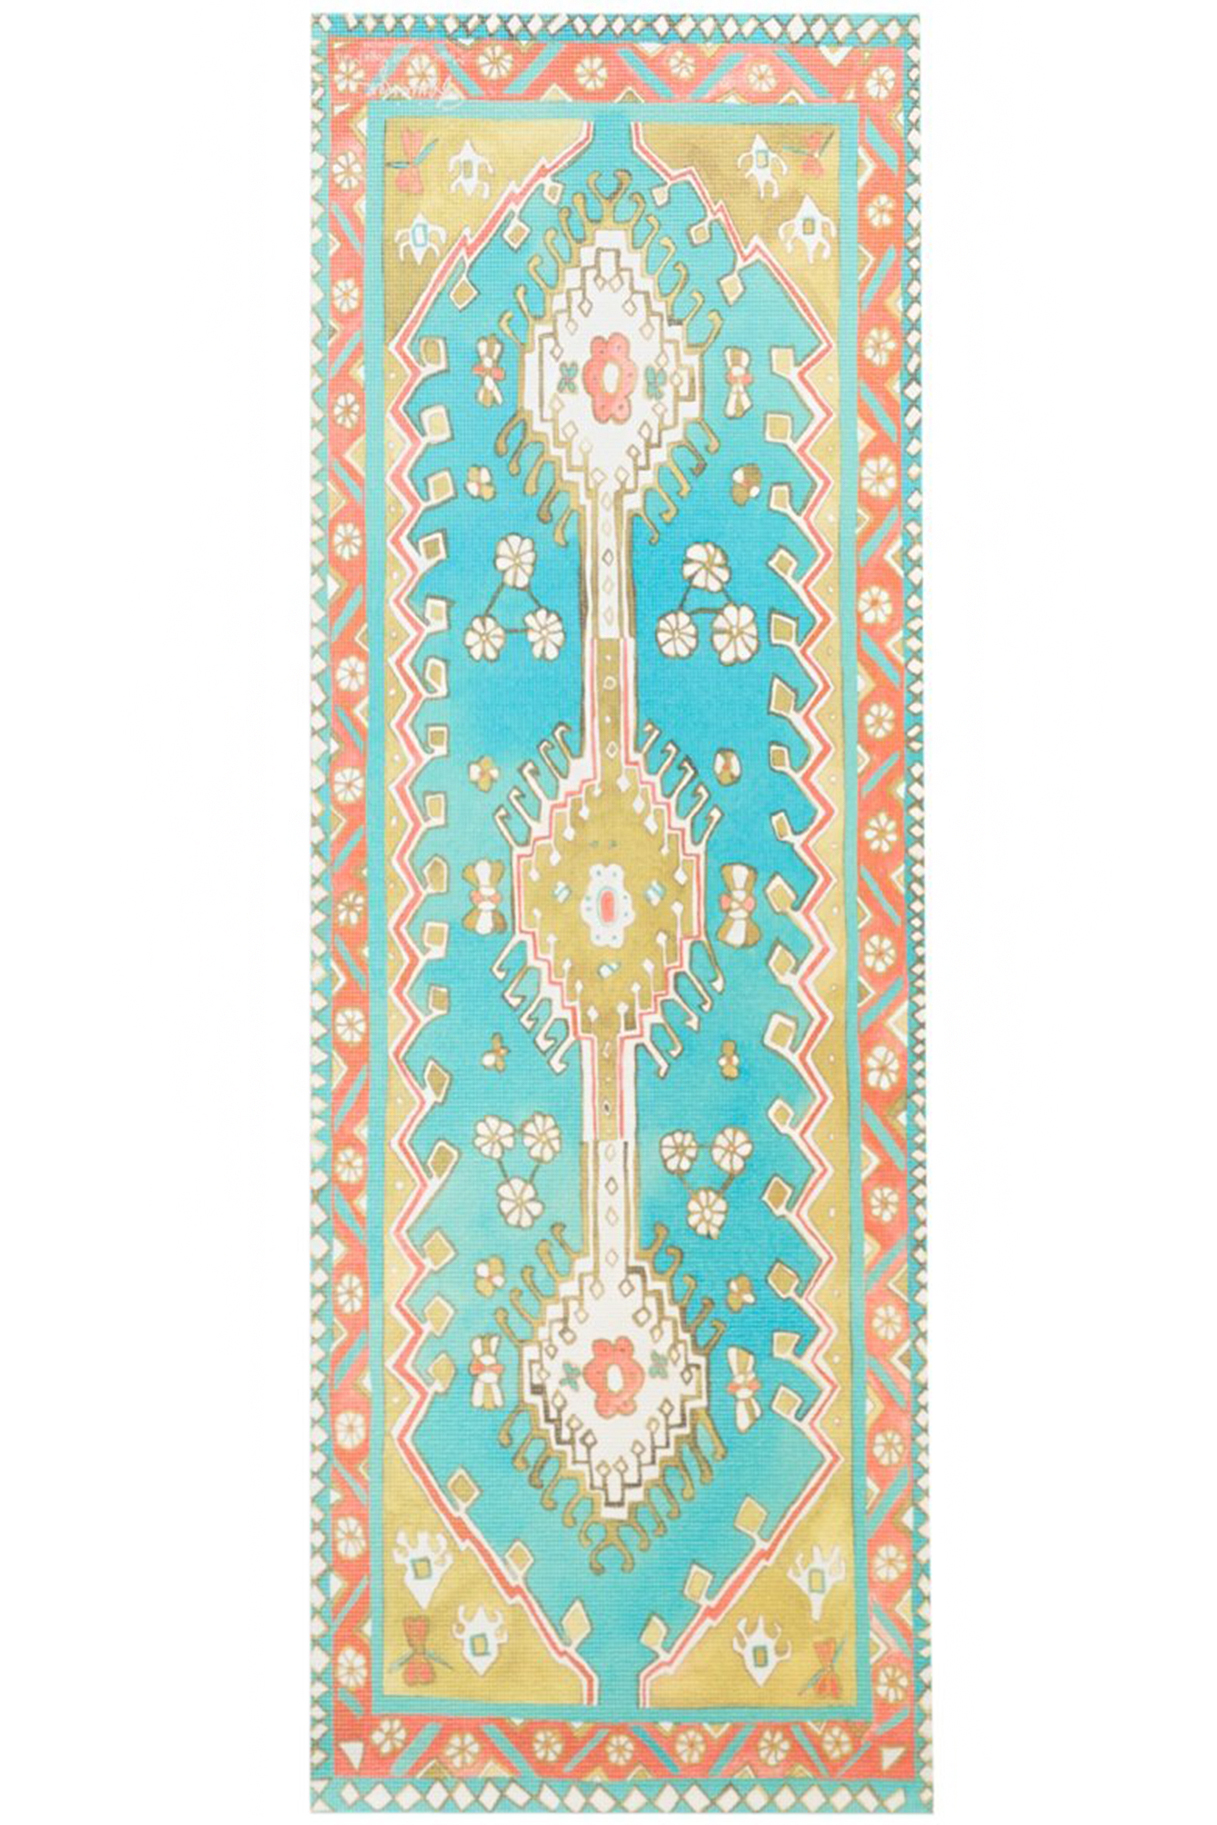 Pretty Yoga Mats Most Wanted